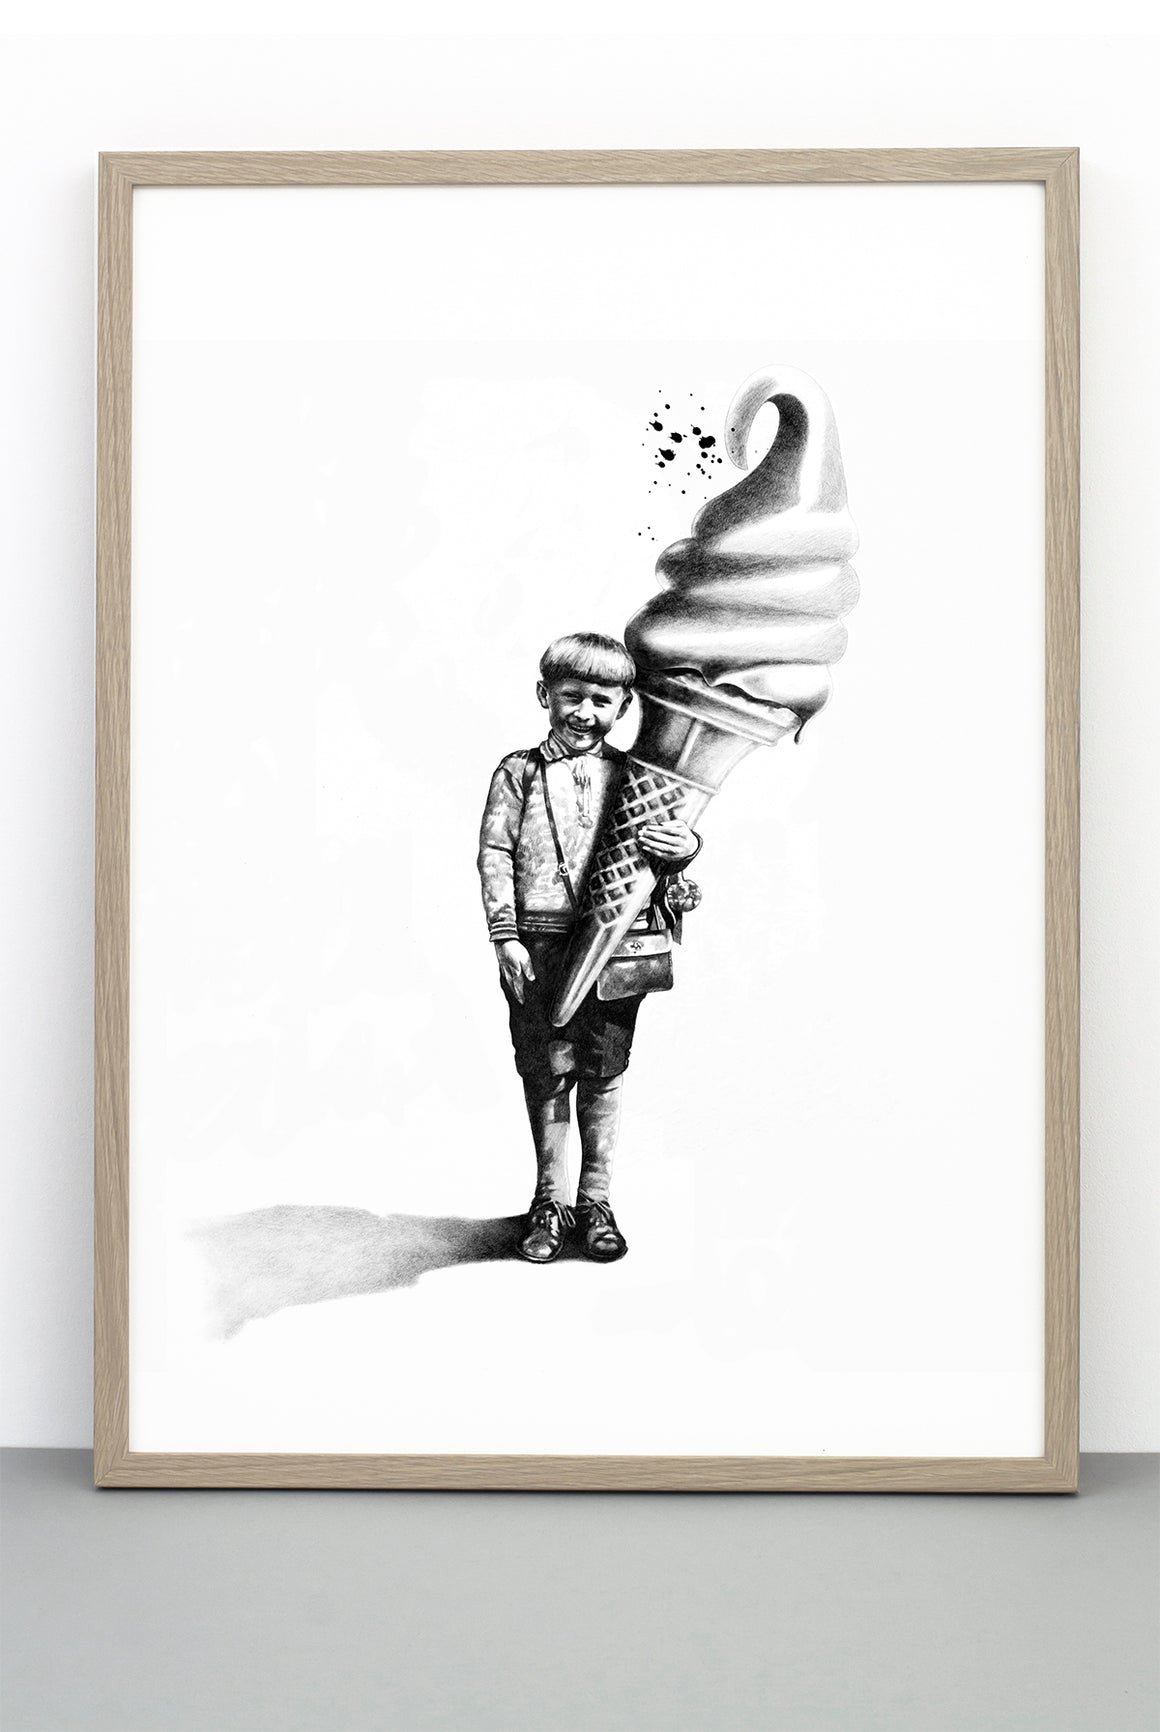 PLEASED AS PUNCH PRINT, AN ILLUSTRATIVE BLACK AND WHITE POSTER OF A BOY AND HIS ICE CREAM